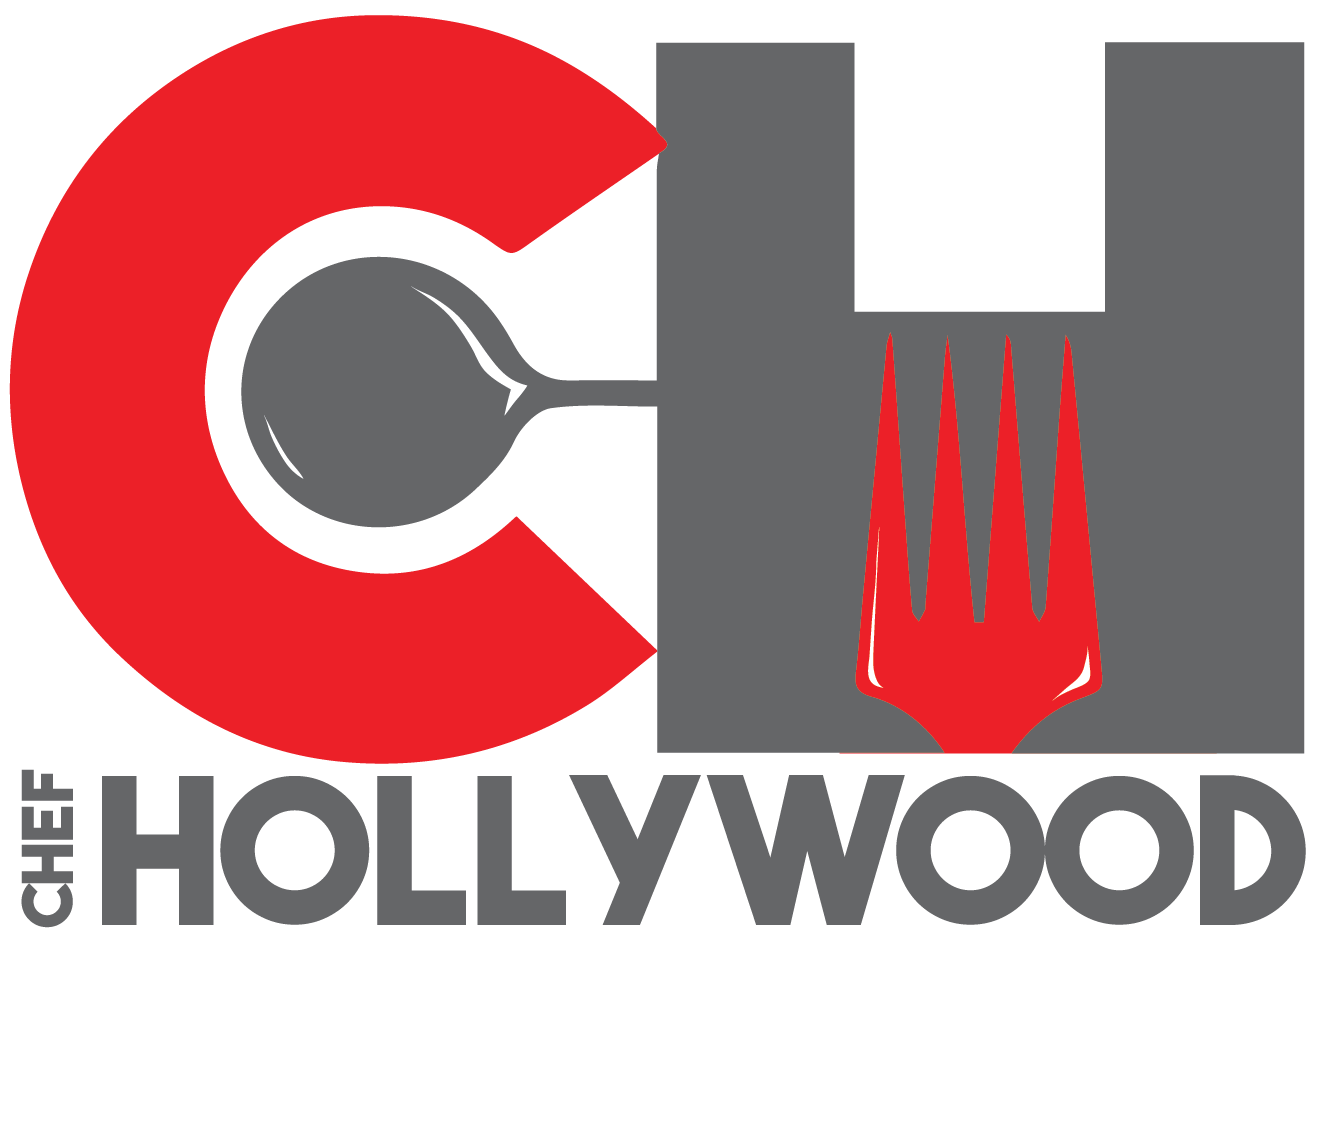 Helping You With All Of Your Culinary Needs